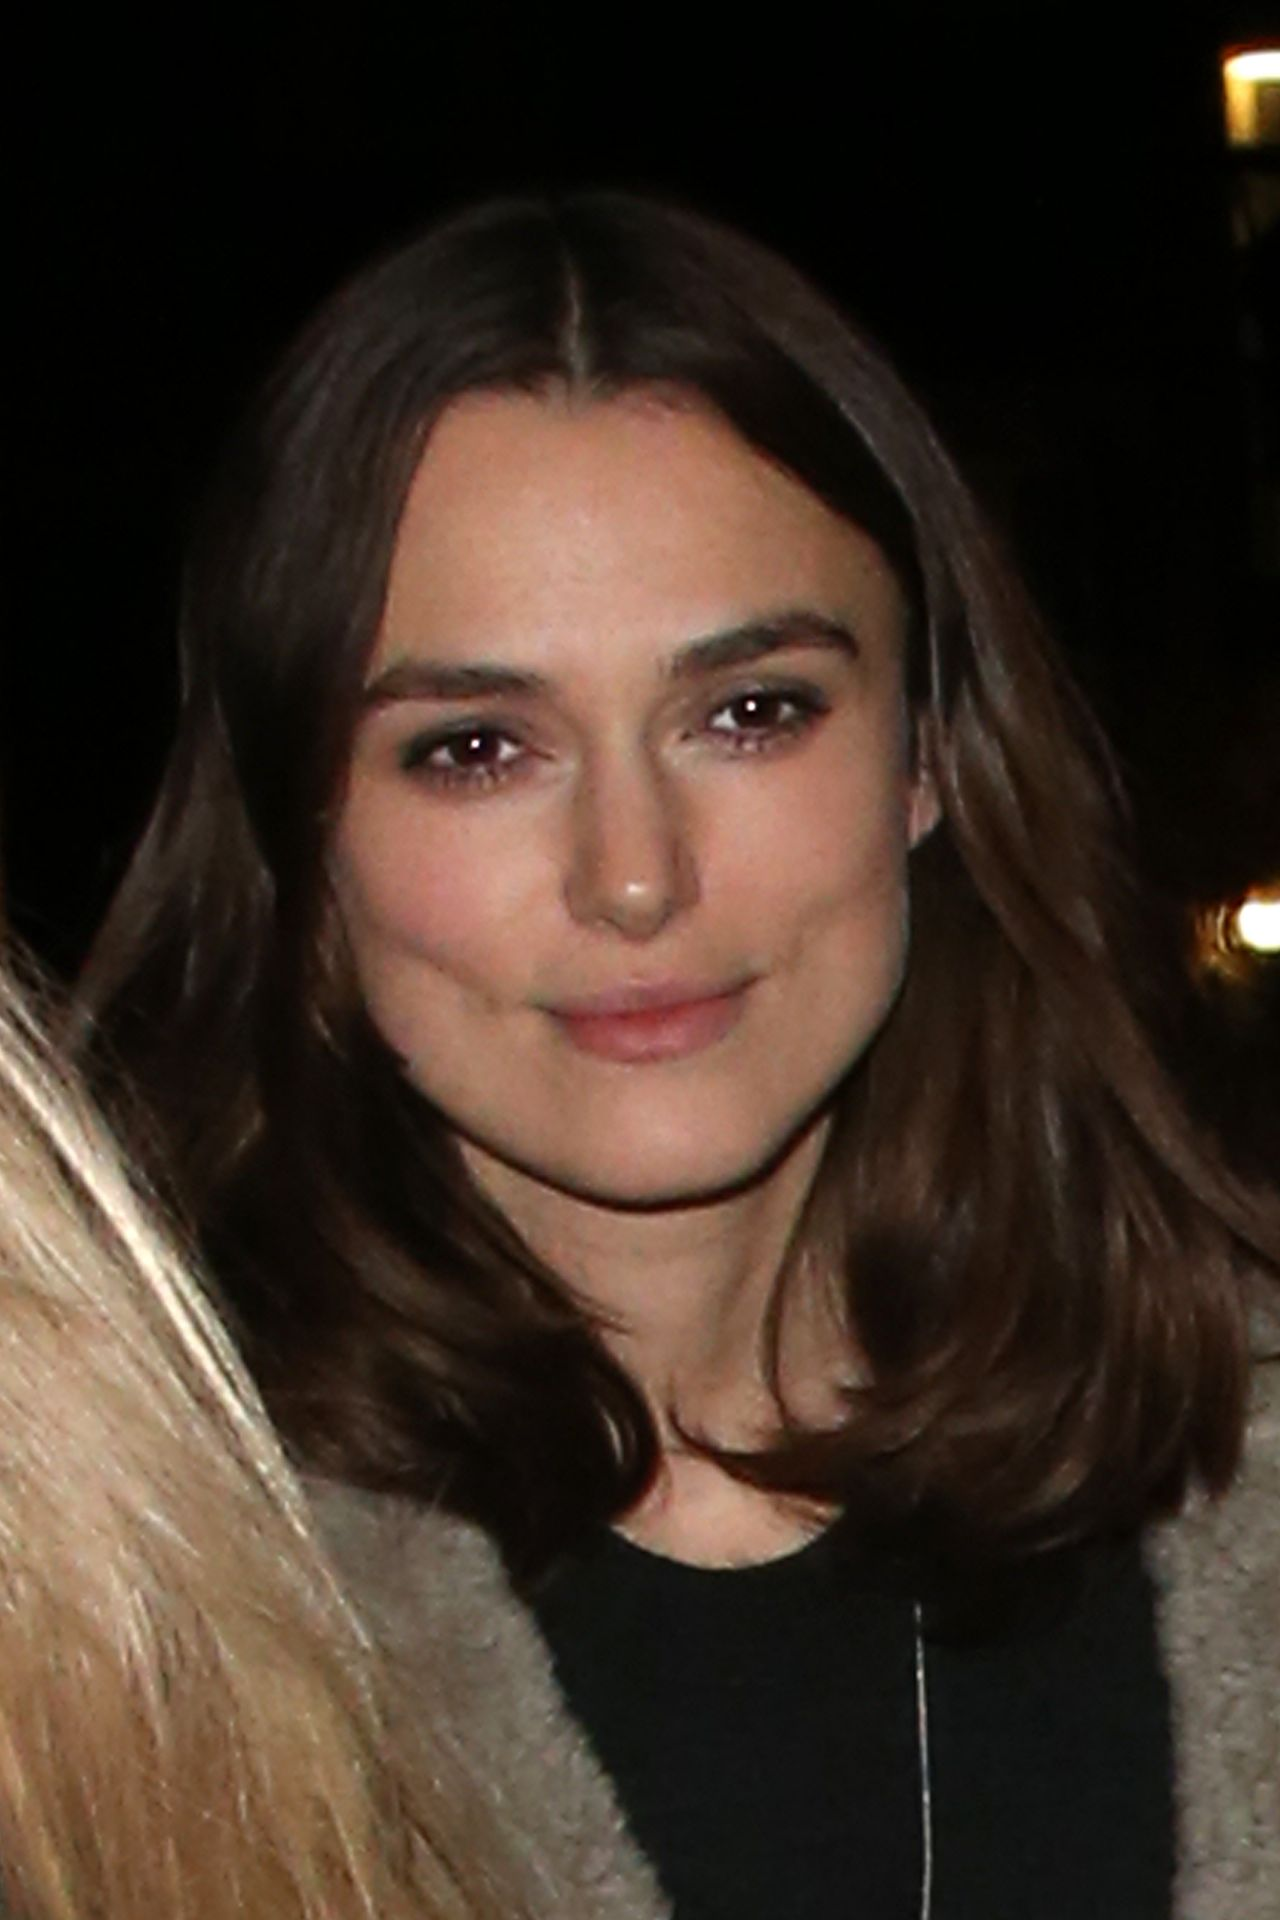 Keira Knightley Street Style - Out in London - November 2013